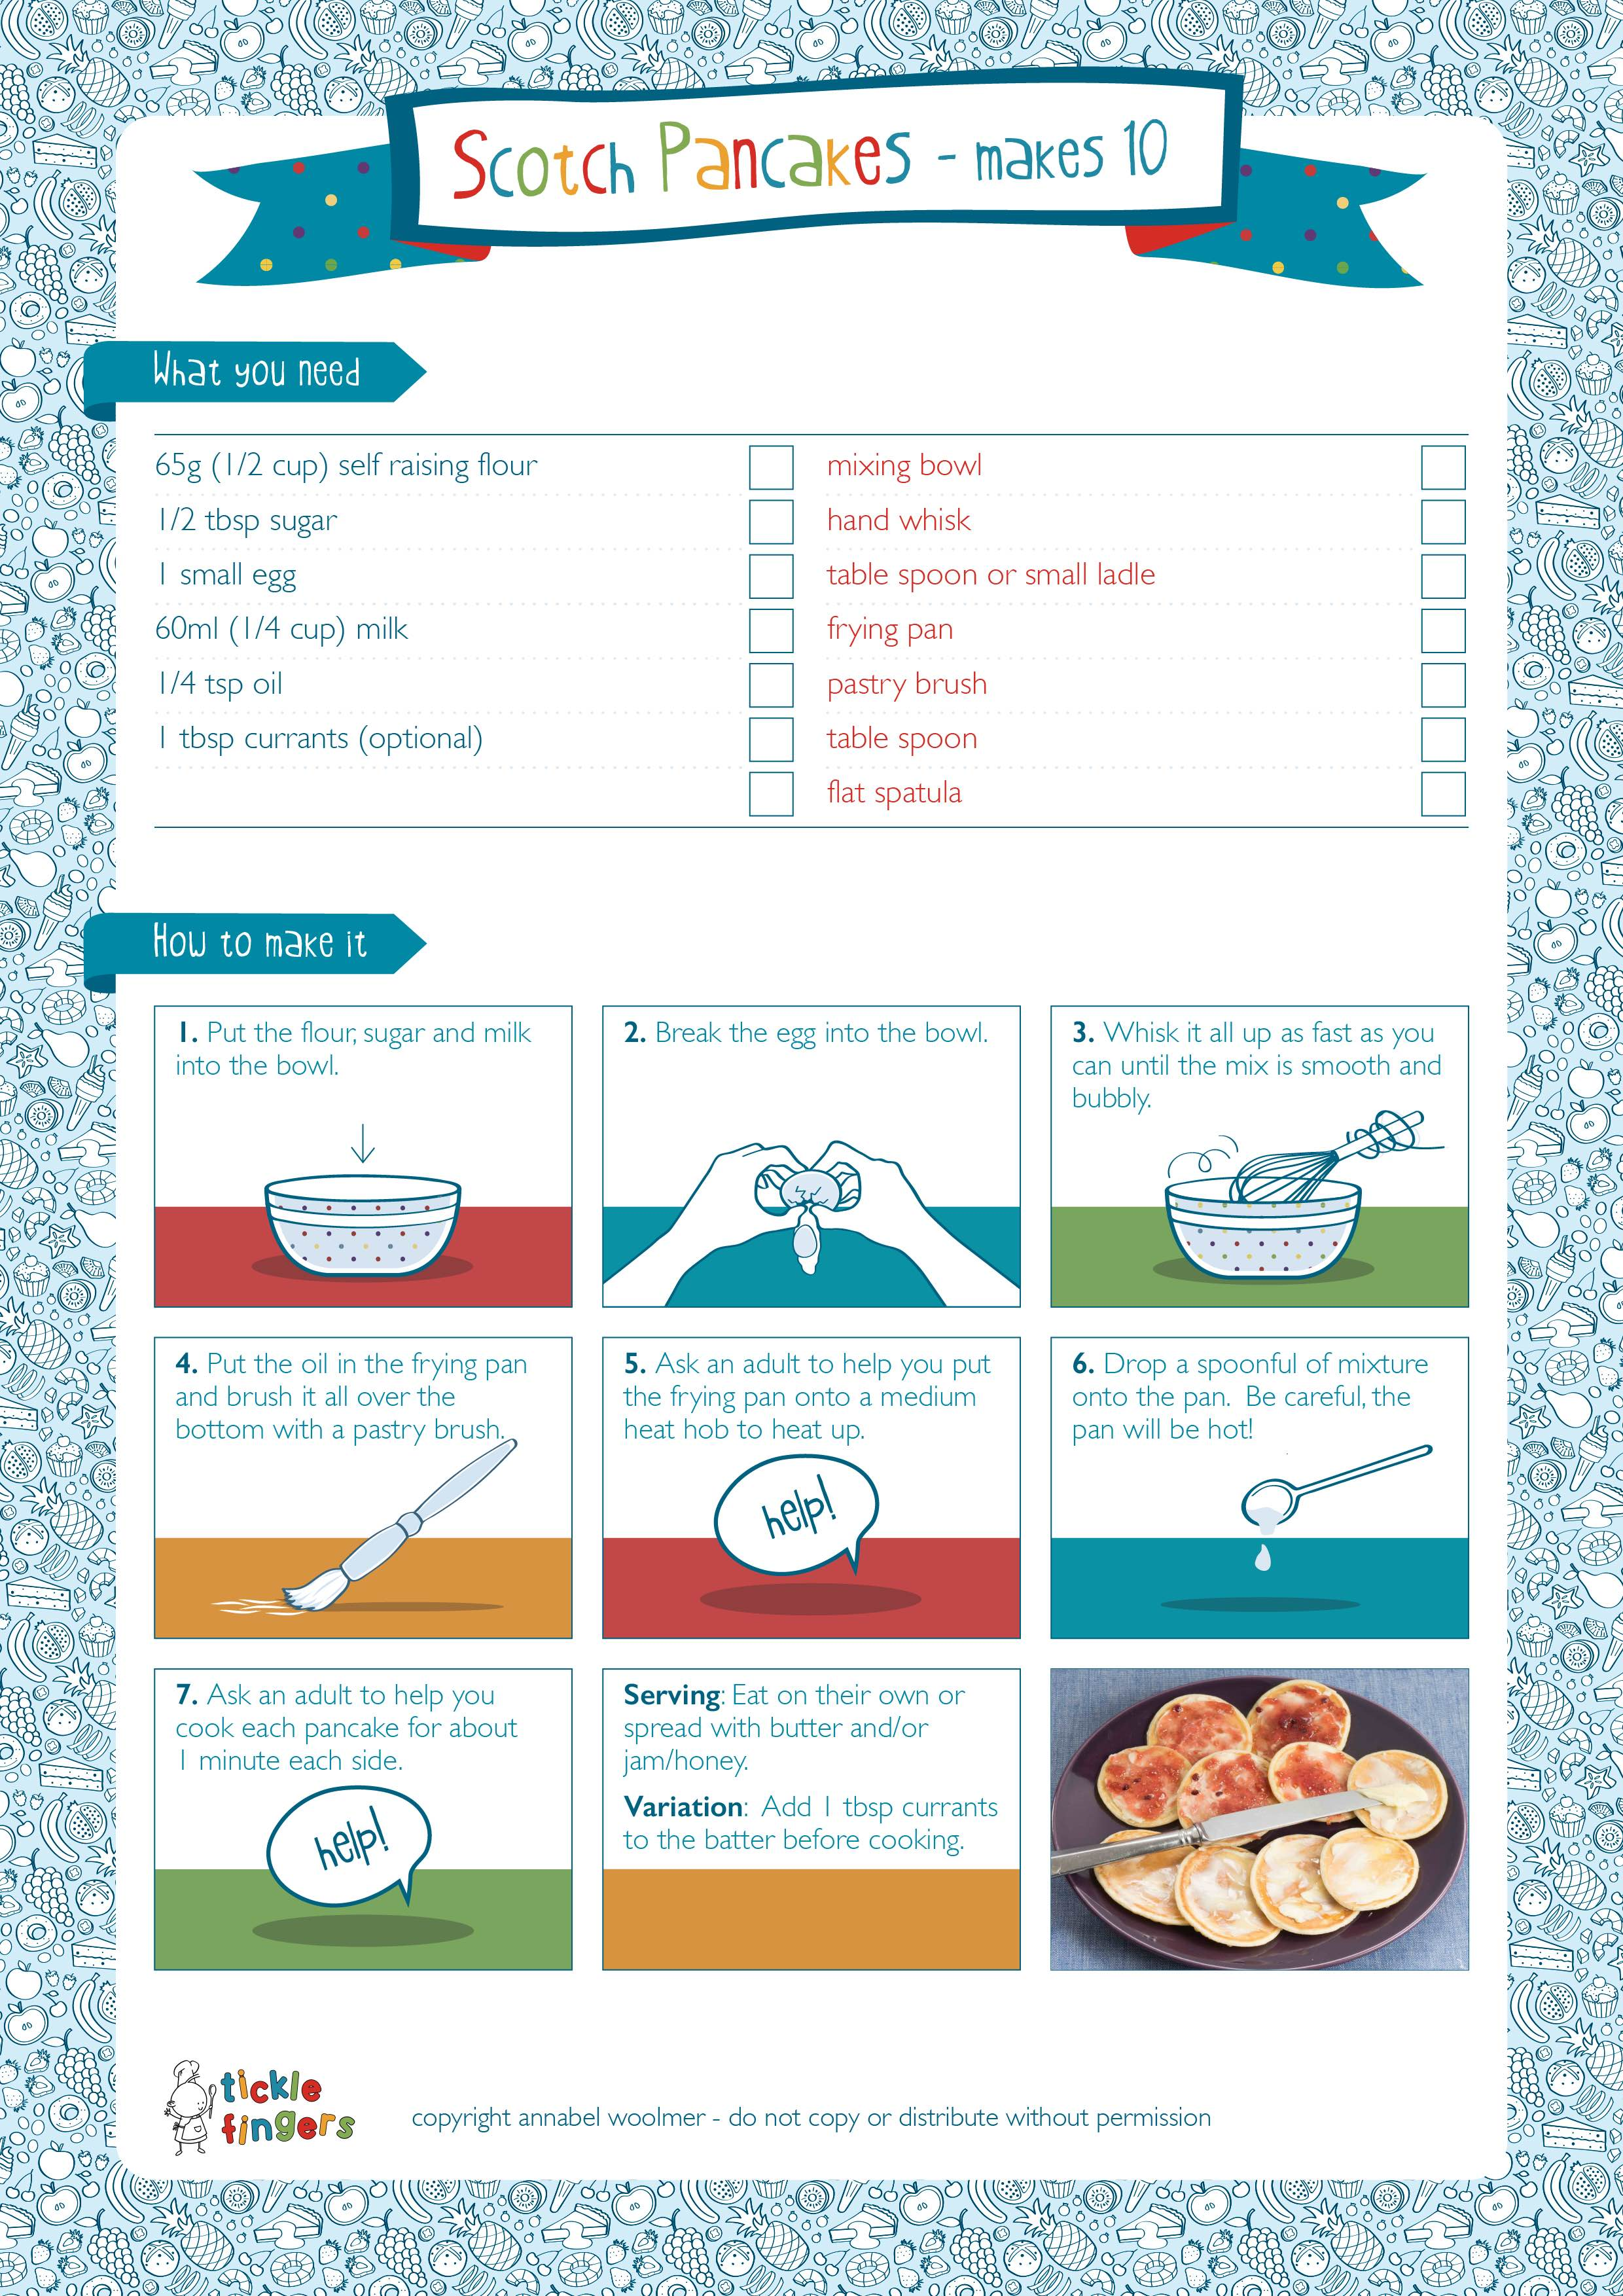 Want more recipes like this, join our online  Cook-Along Club